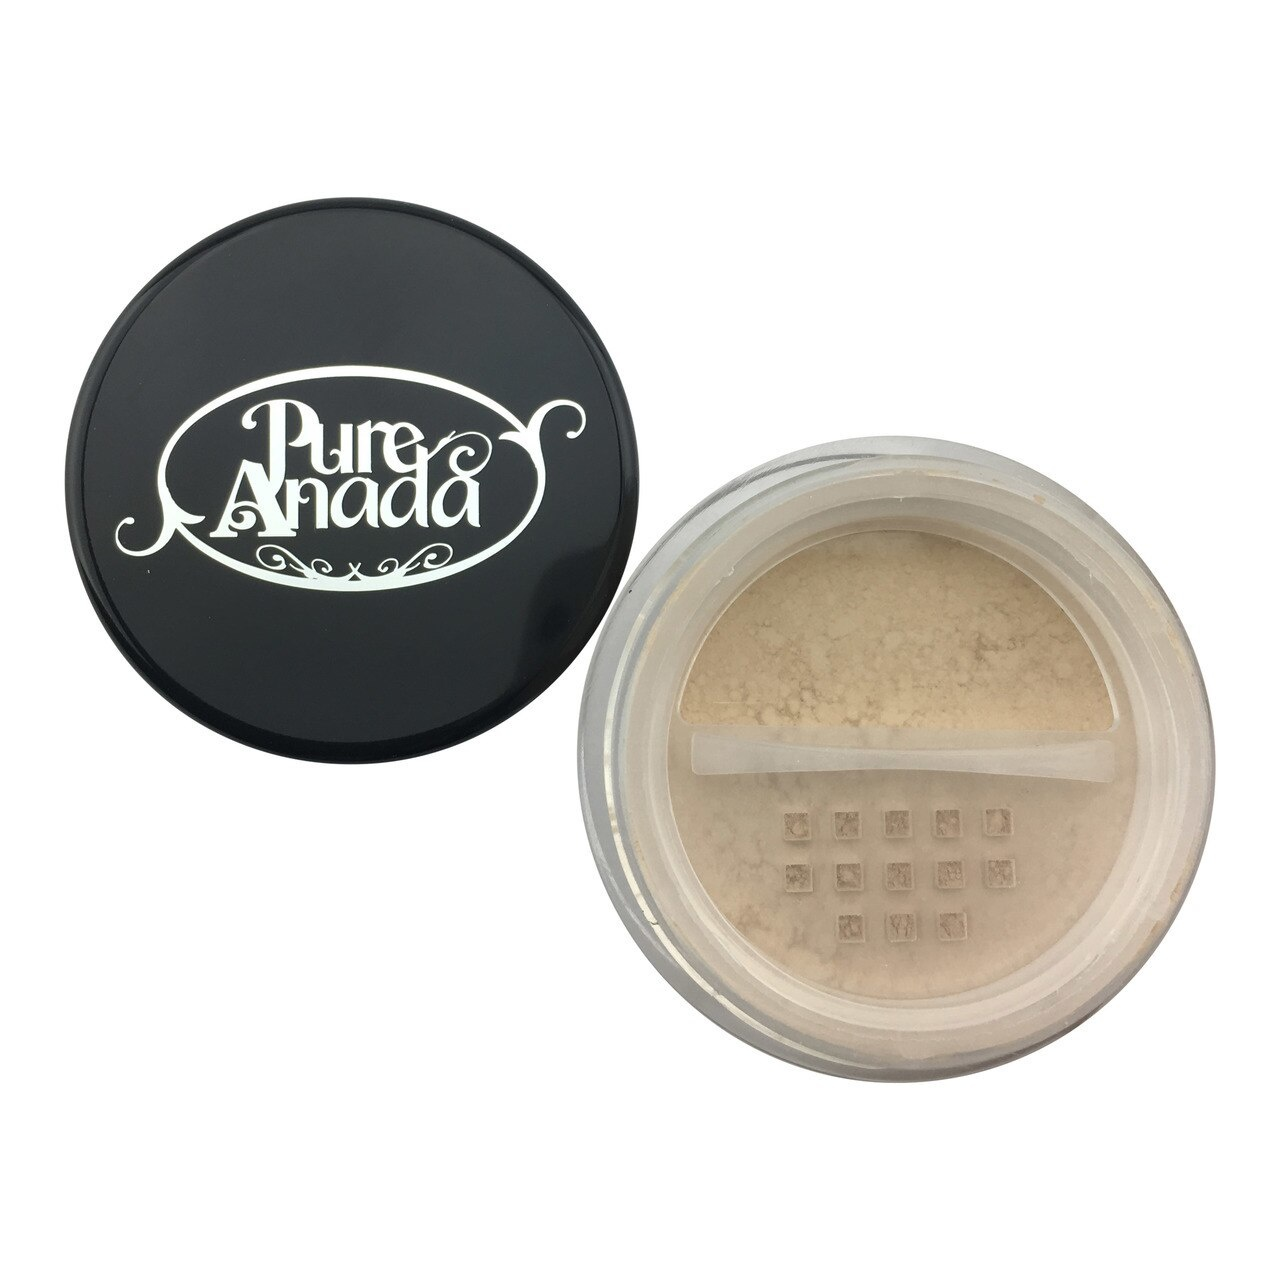 Loose Mineral Foundation - Atlantic Bisque: Very Fair (Neutral)-2